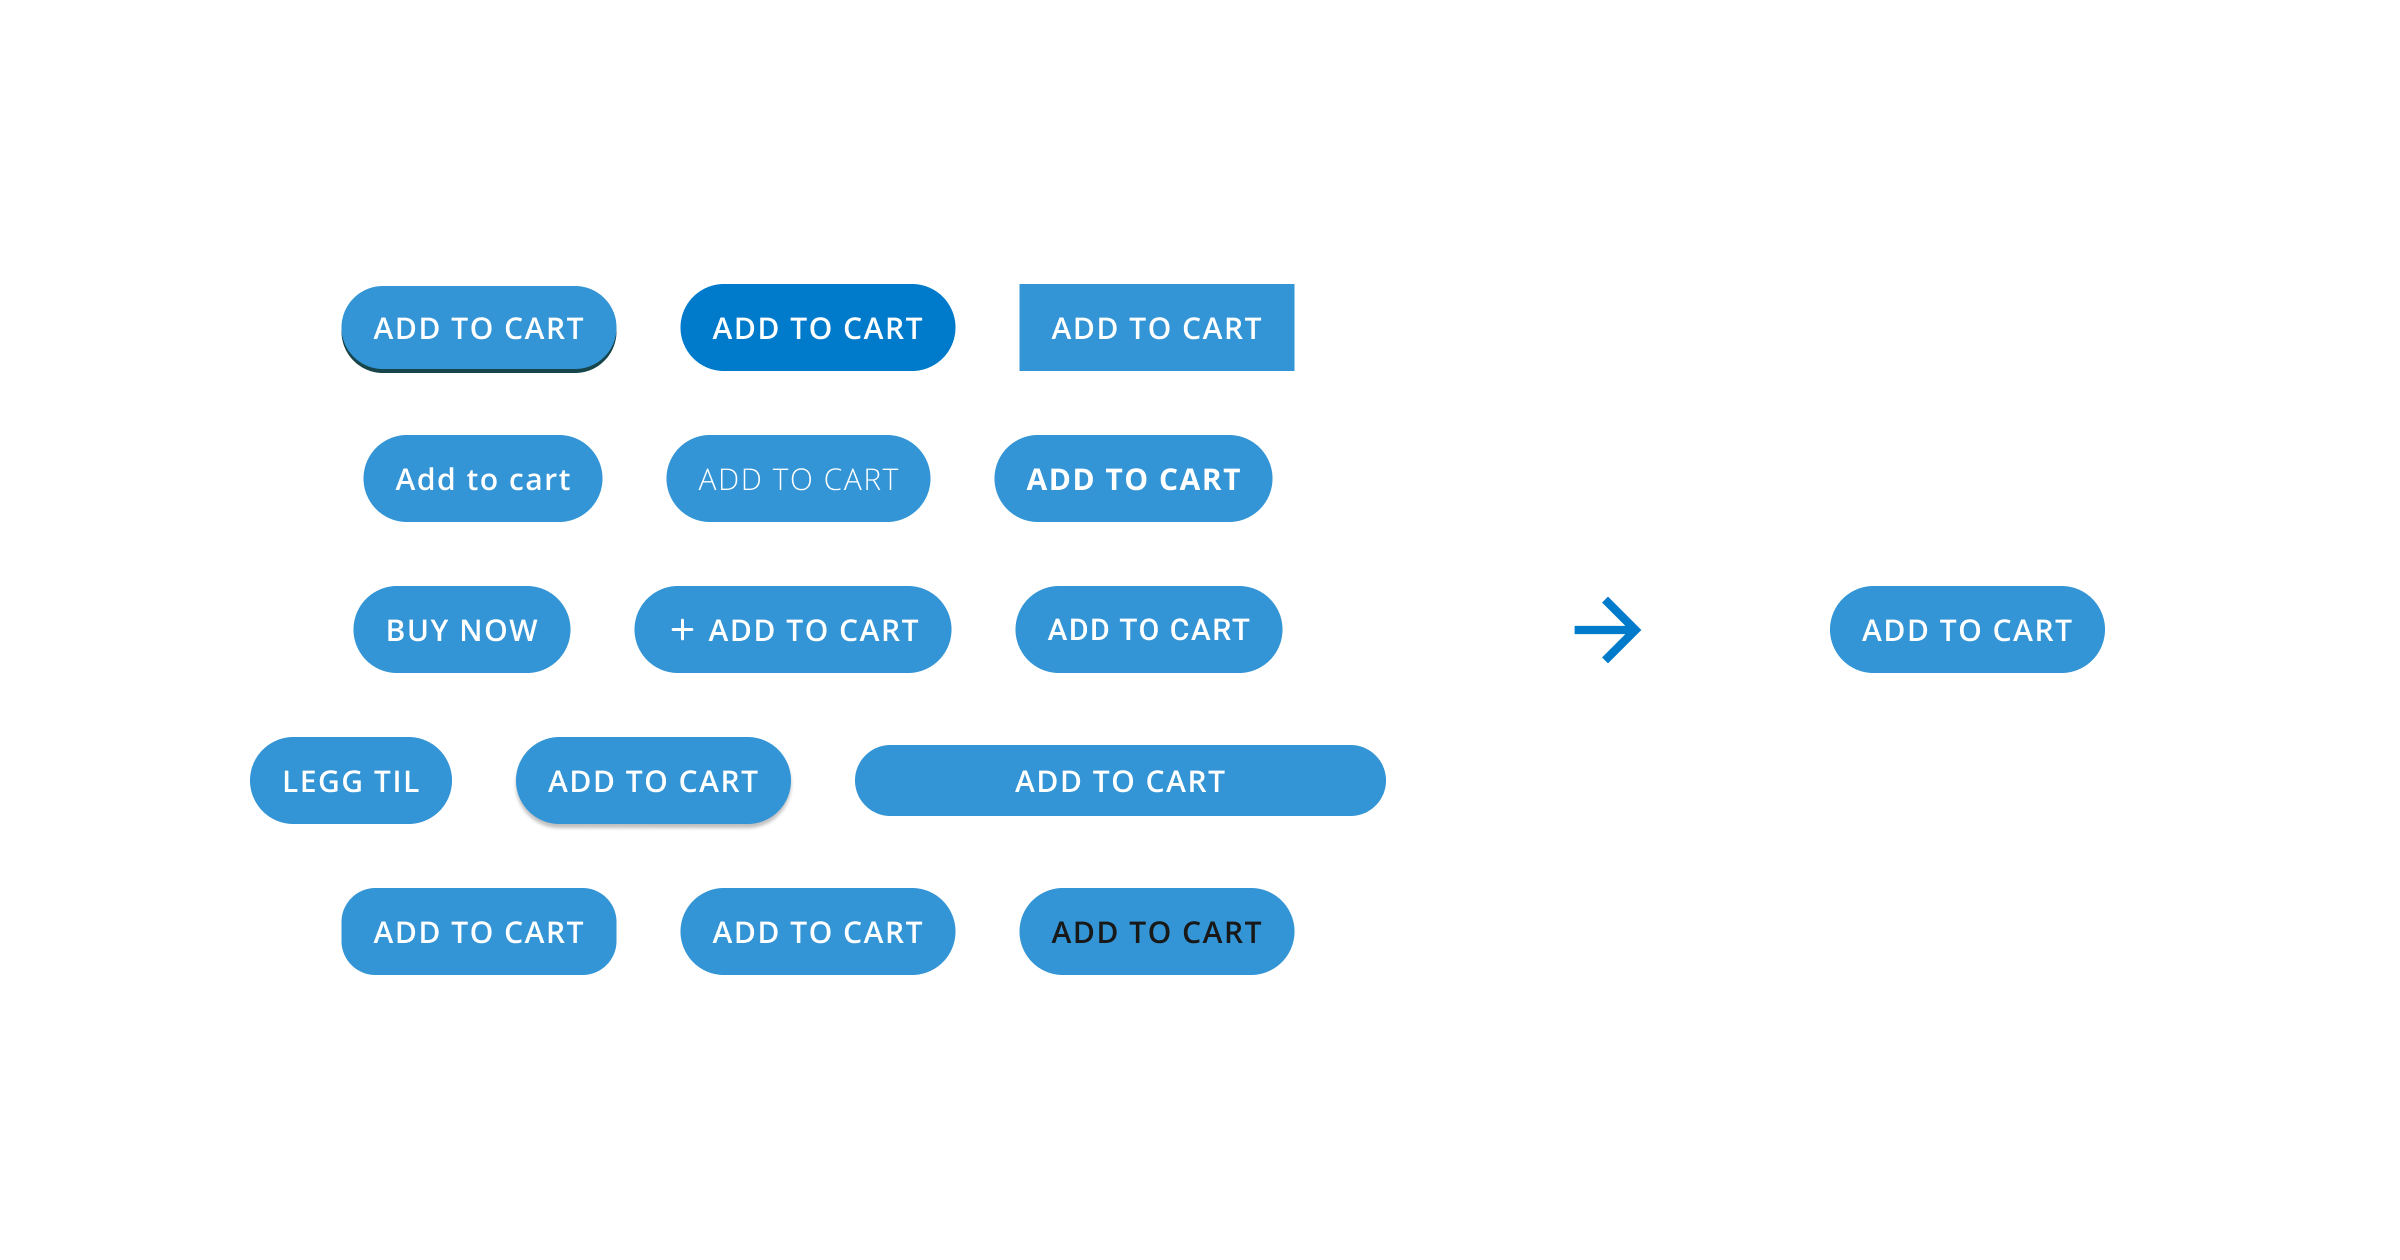 A chaotic group of buttons with just one change from eachother. Stick to one styling for your Call to Action.